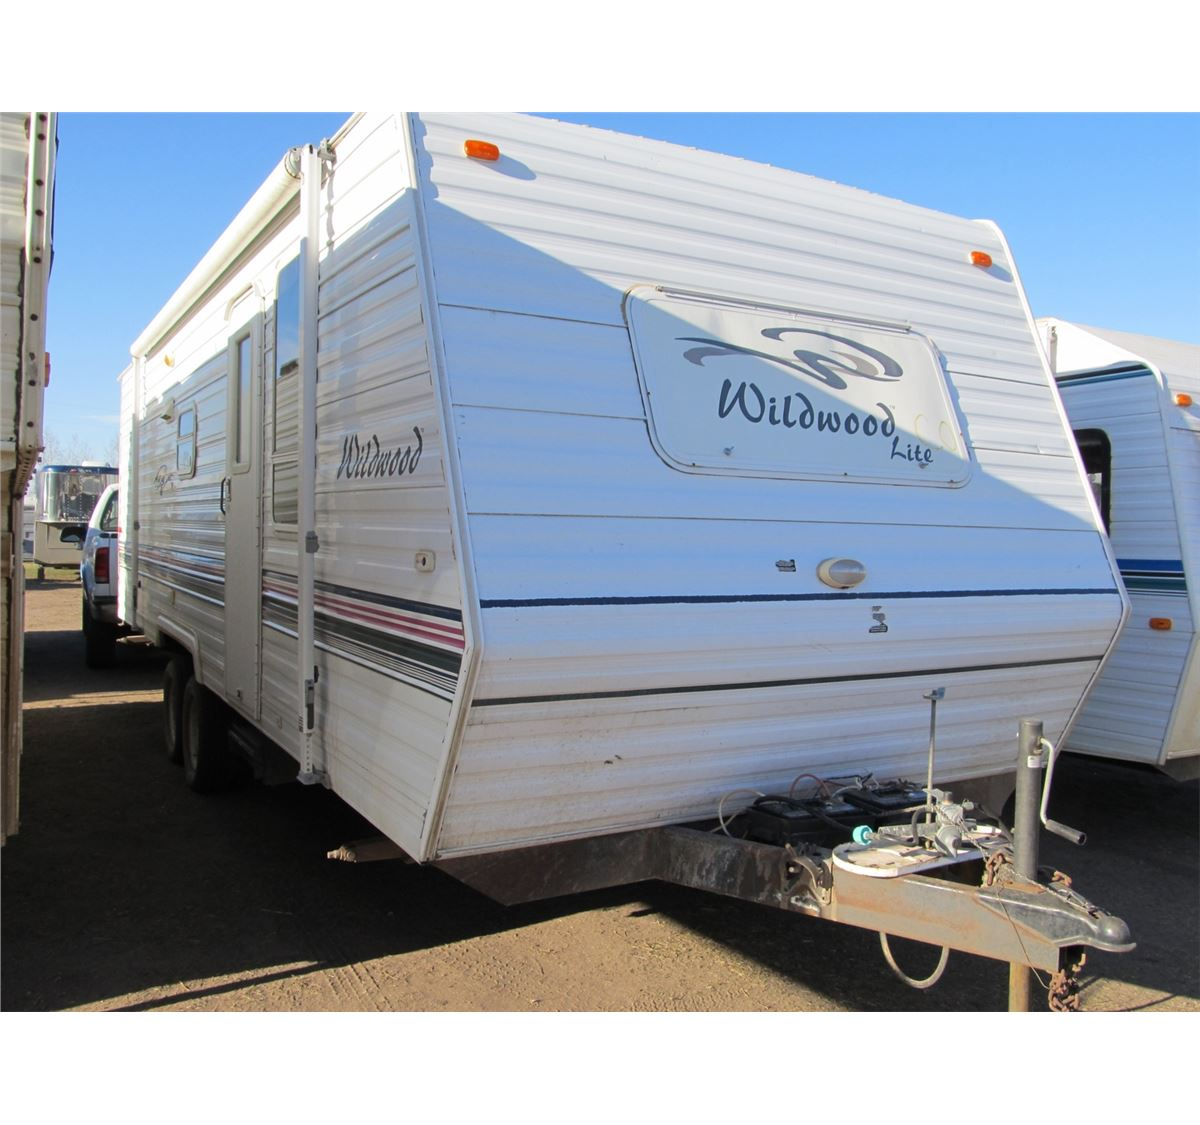 Travel Trailers With Outdoor Kitchens: 2001 FOREST RIVER T-24 WILDWOOD LITE 25' TRAVEL TRAILER